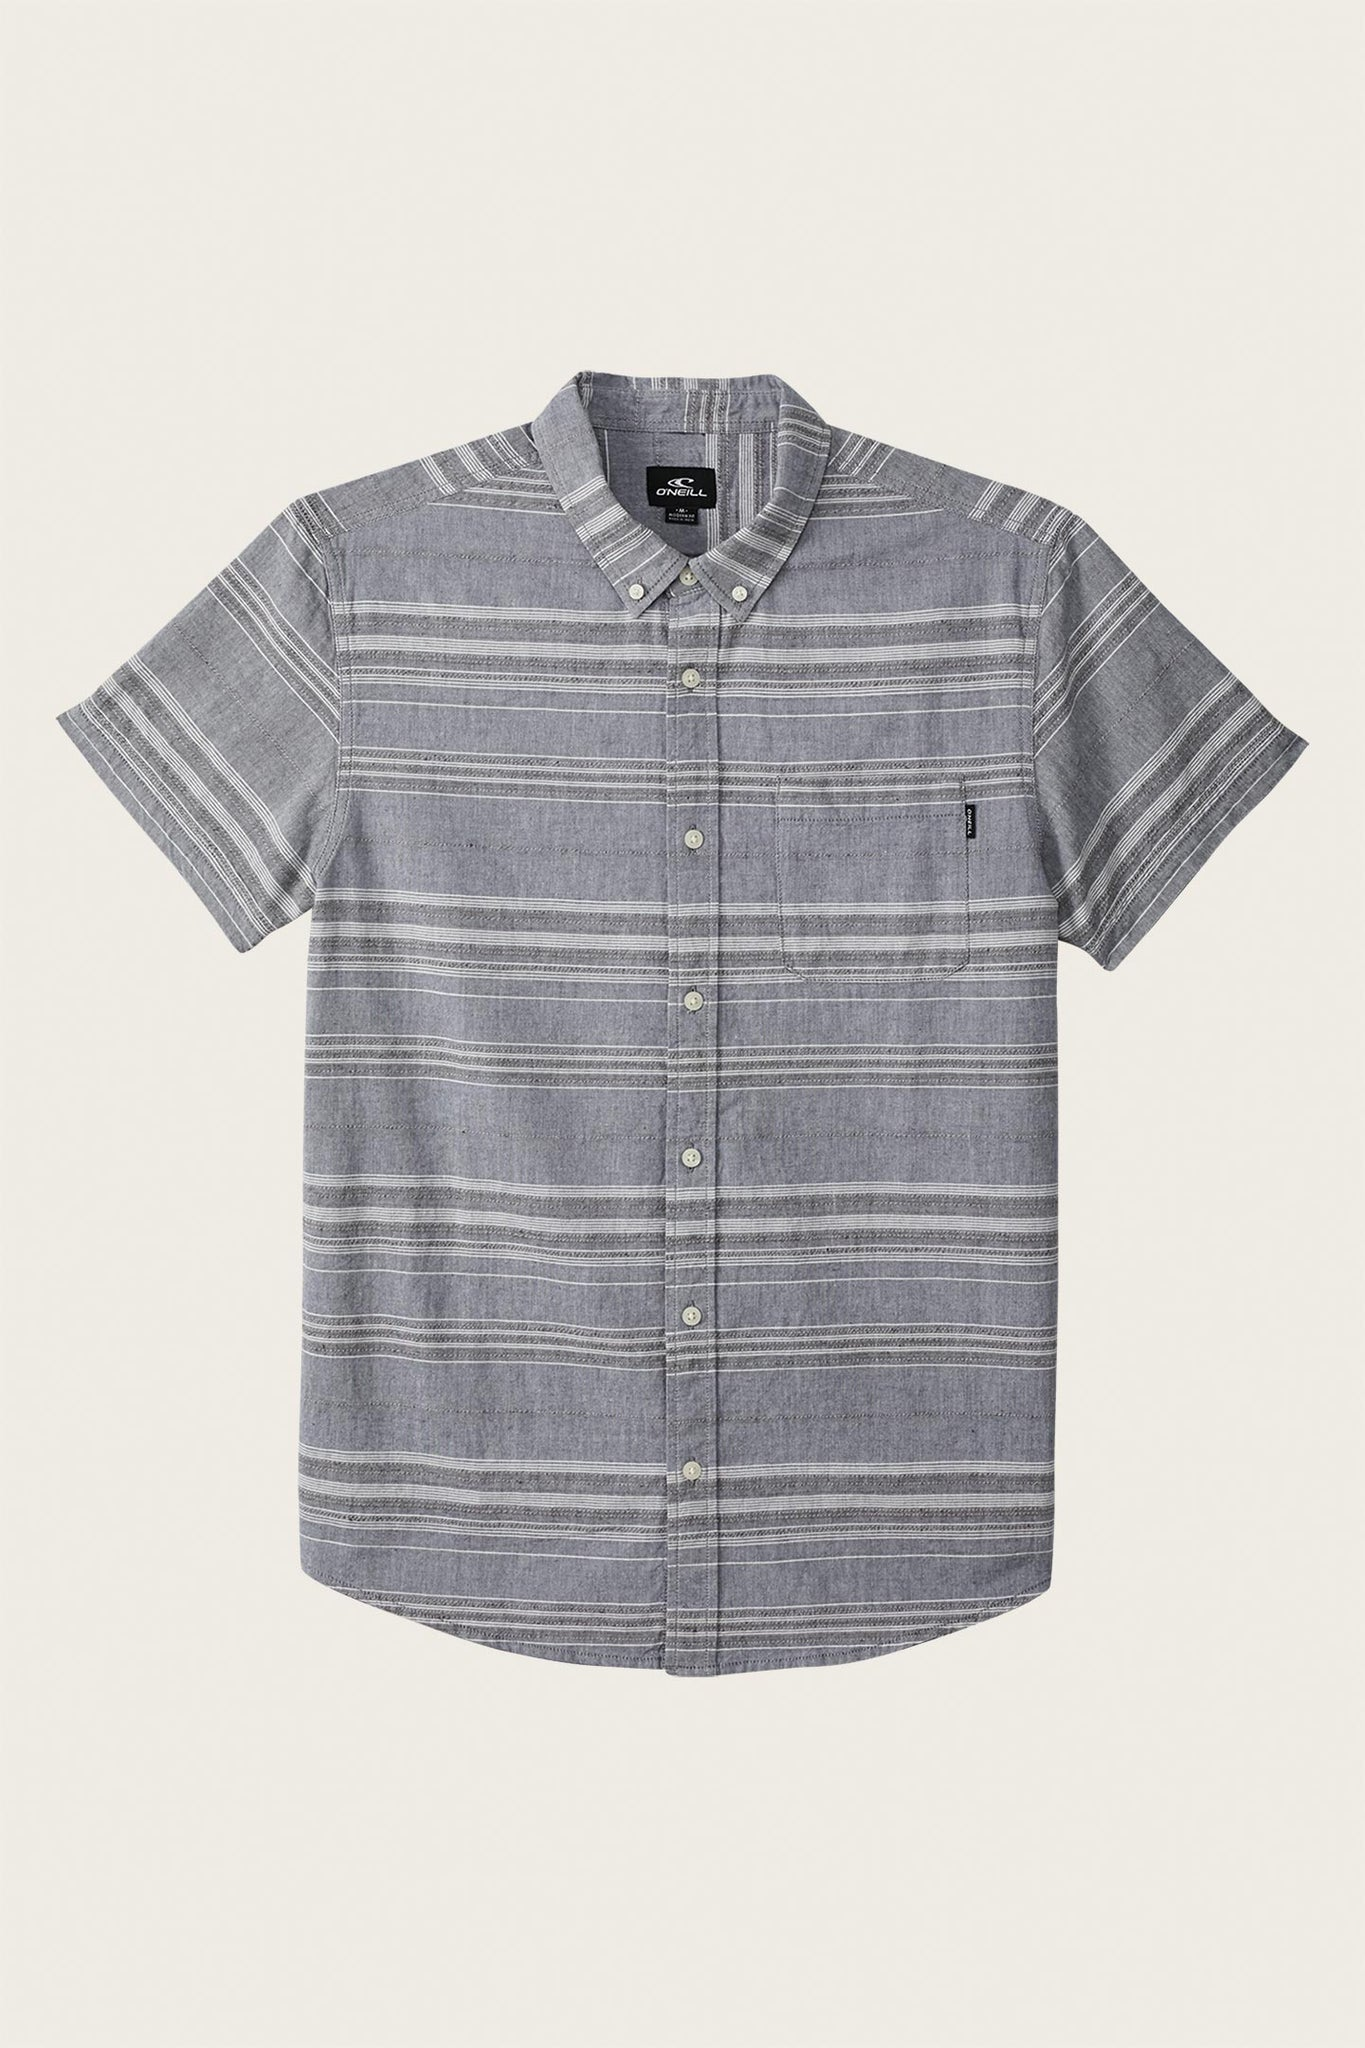 Rivera Shirt - Light Indigo | O'Neill